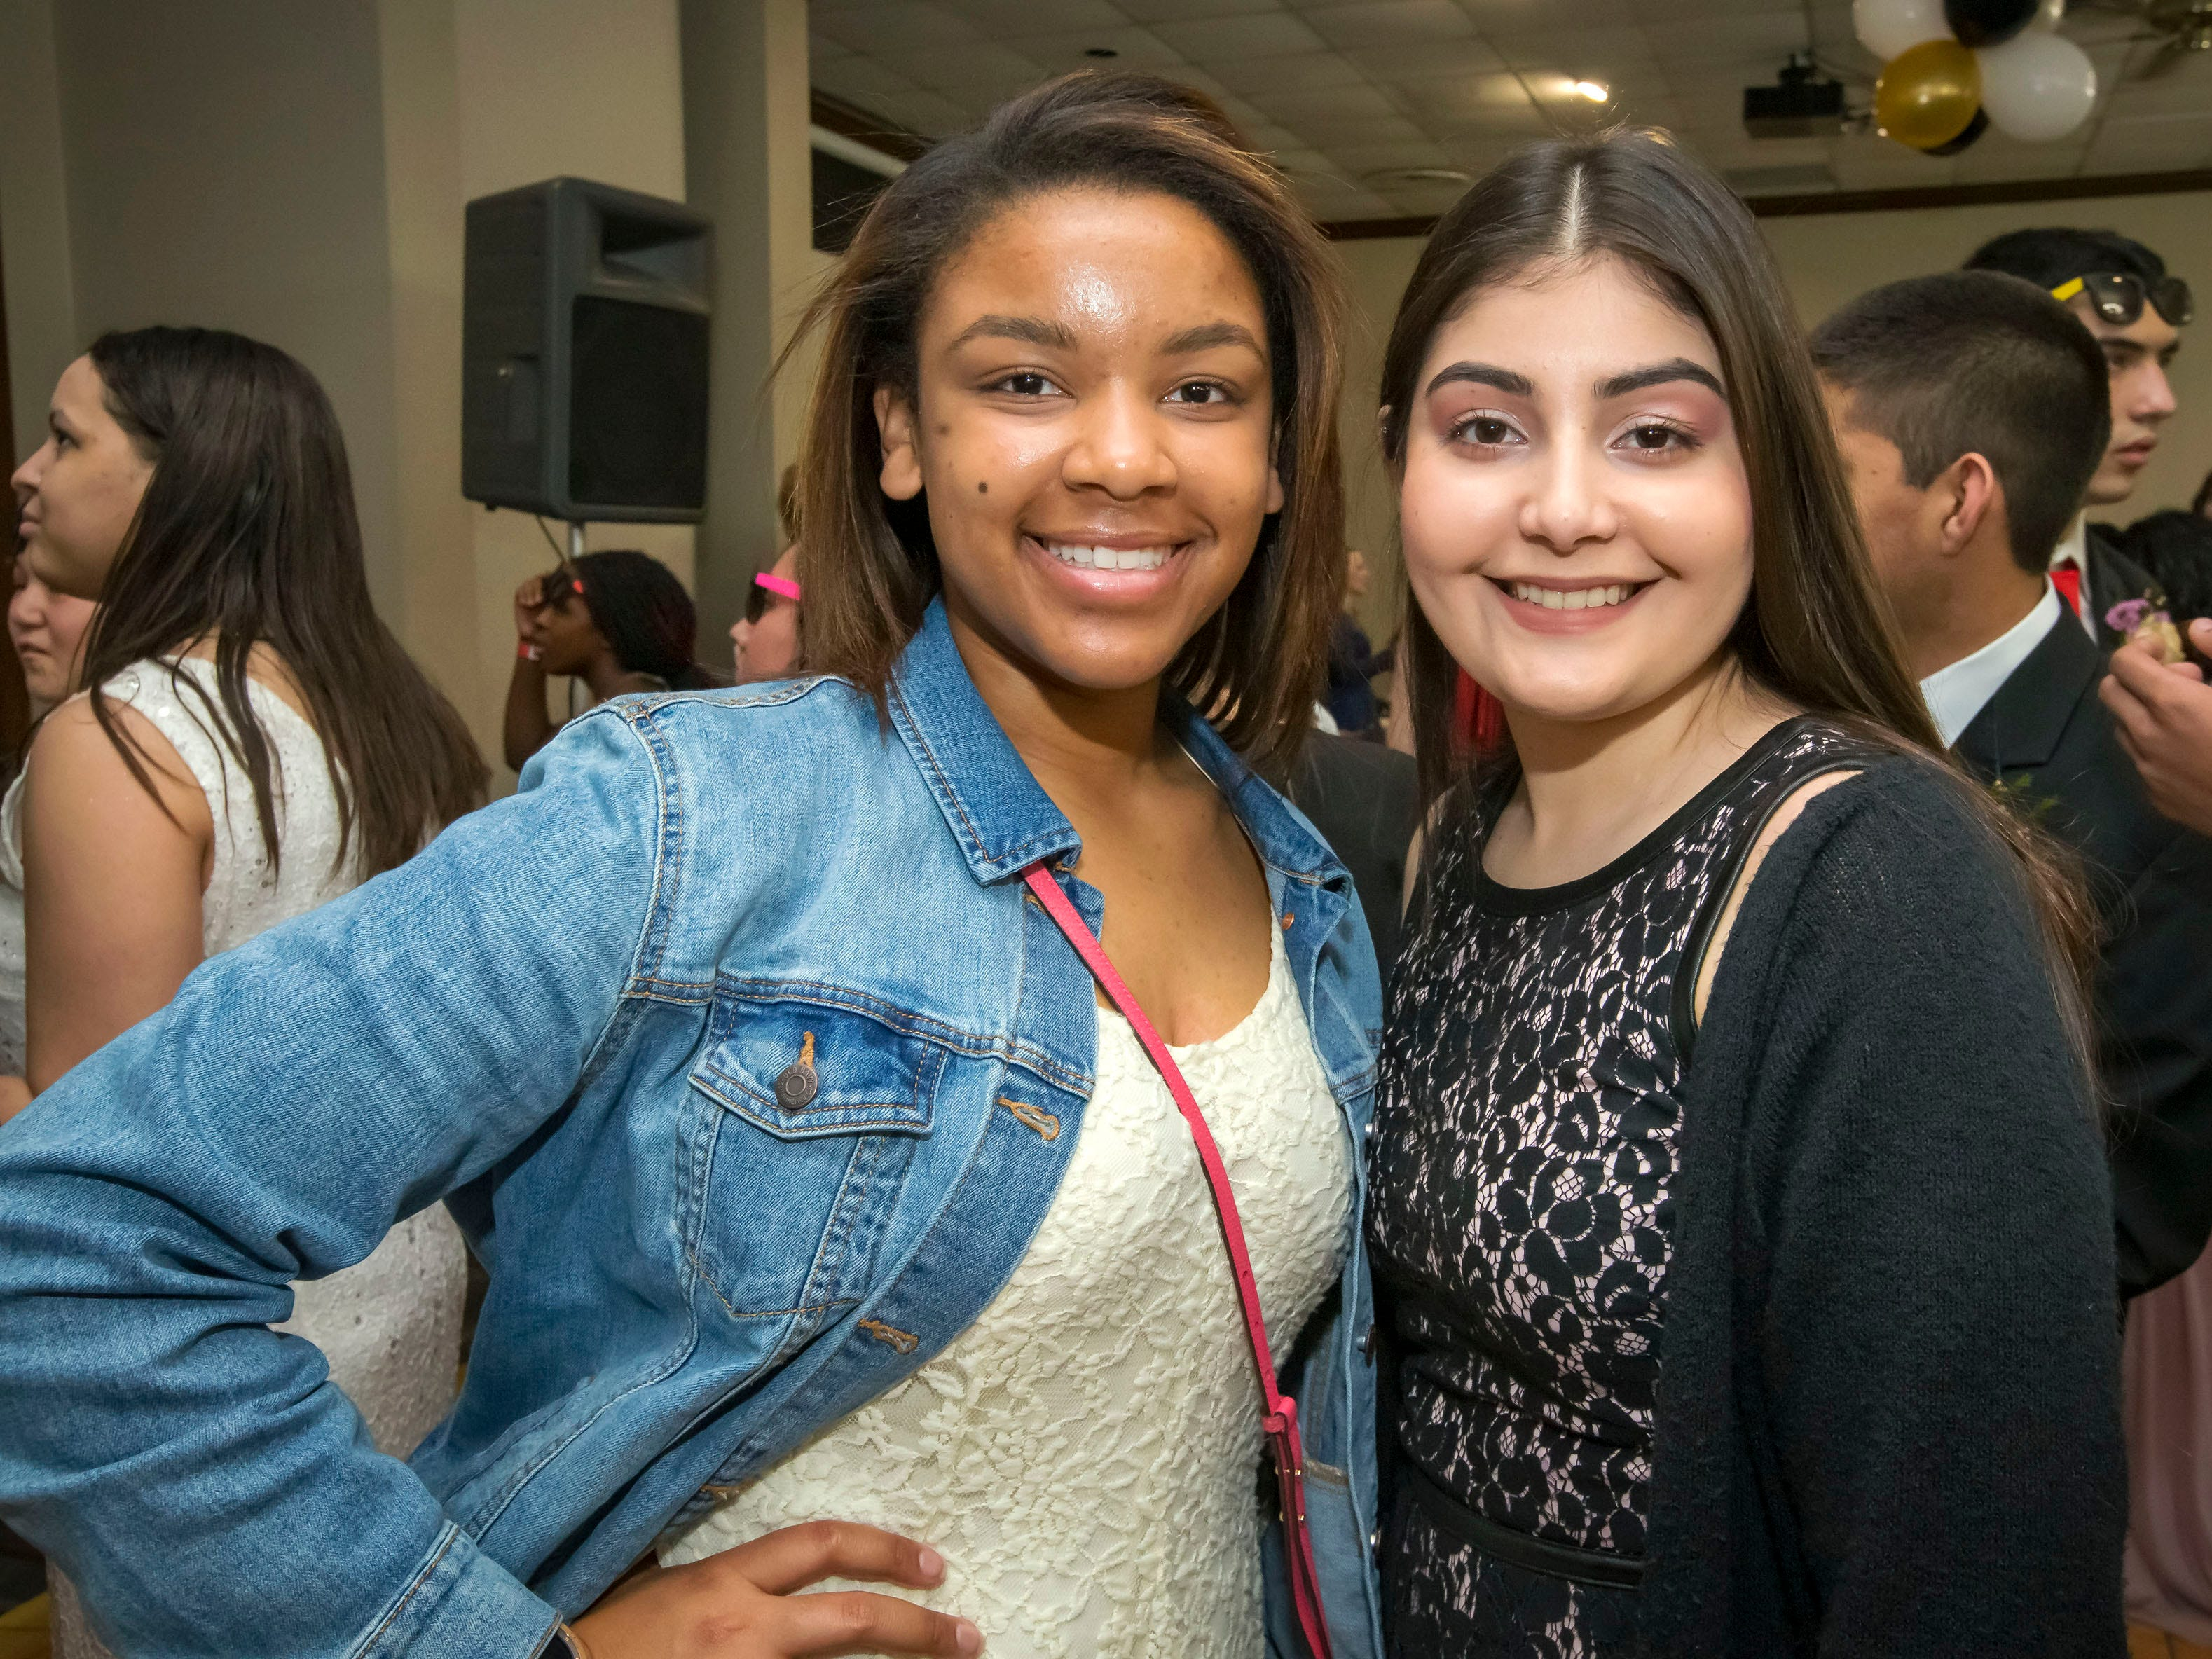 The annual prom for Rutherford County Schools special needs students was held Wednesday, March 20, 2019 at Smyrna Event Center.